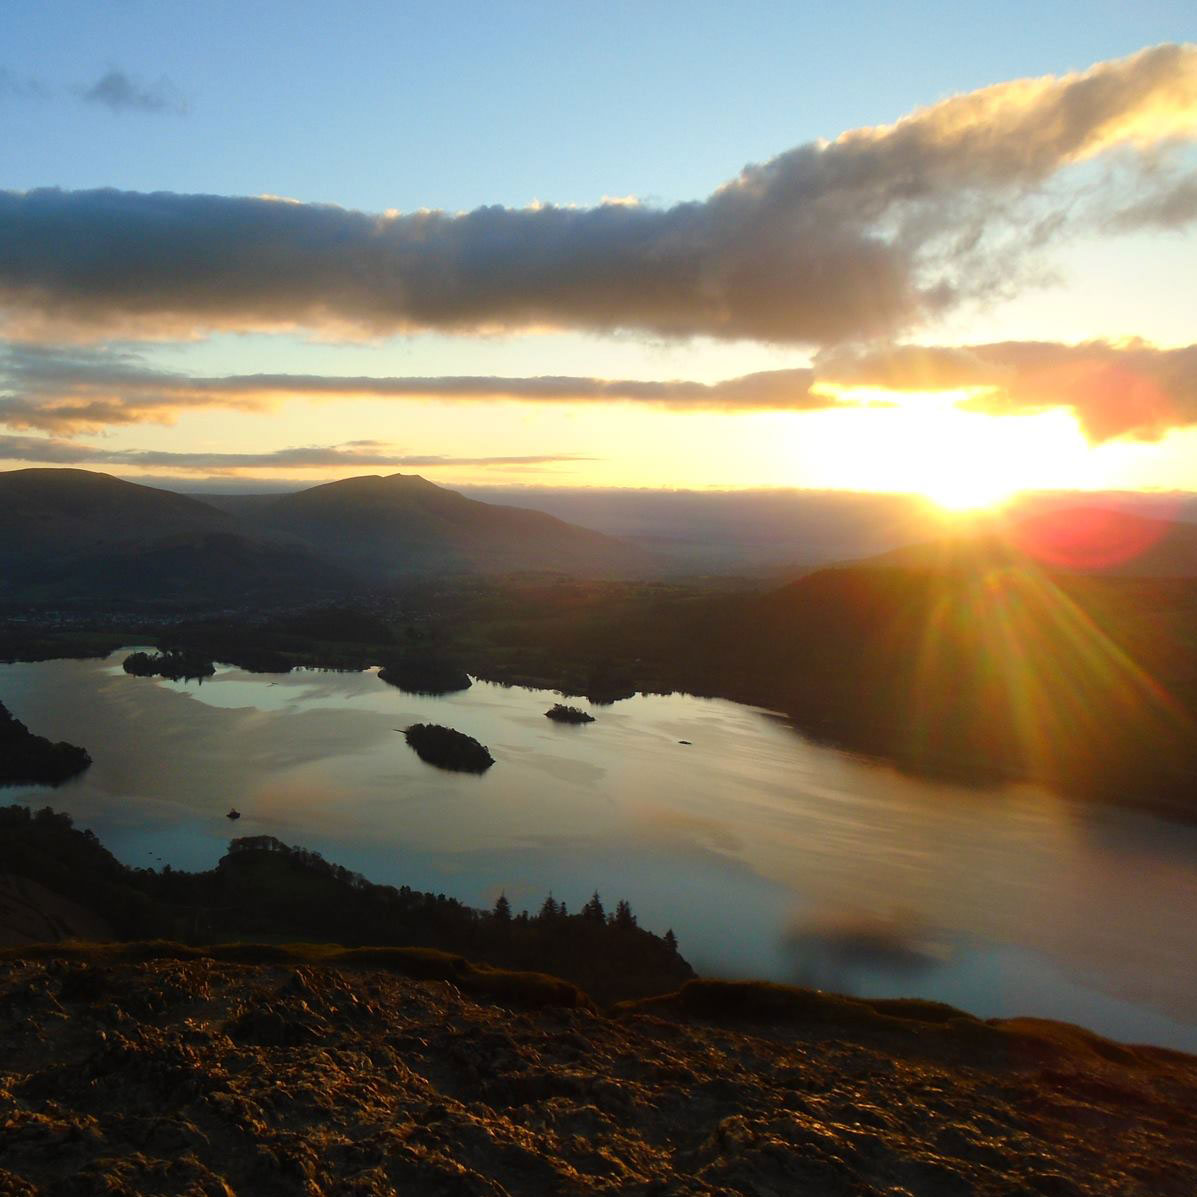 Image for article ATR-Derwentwater.jpg